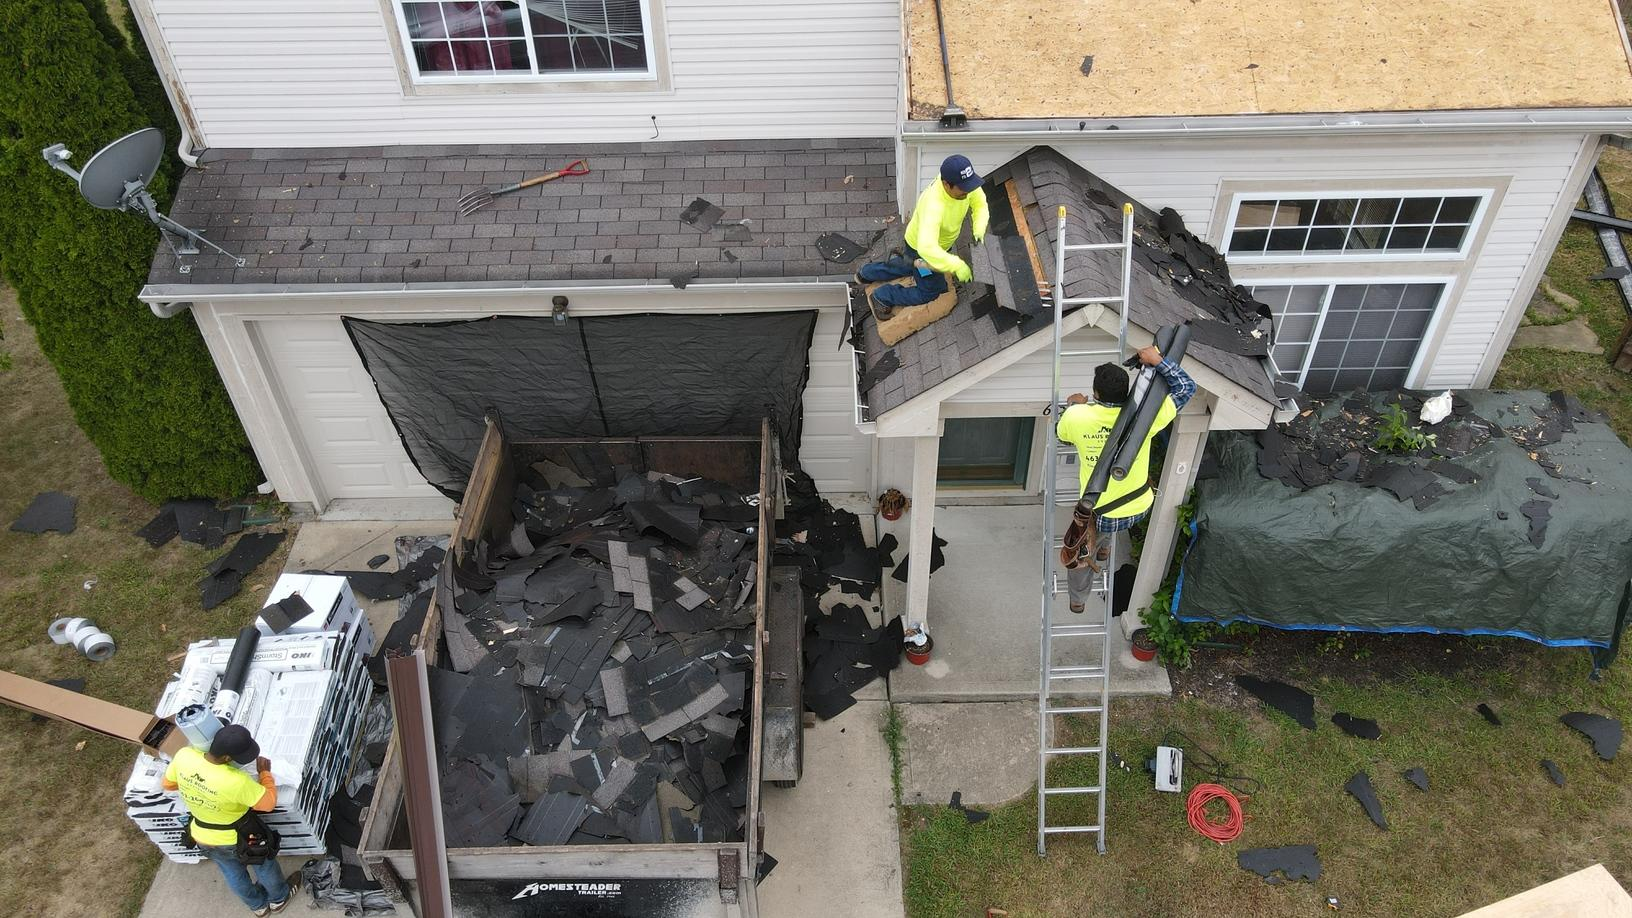 Klaus Roofing Crew Finishing Roof Tear Off